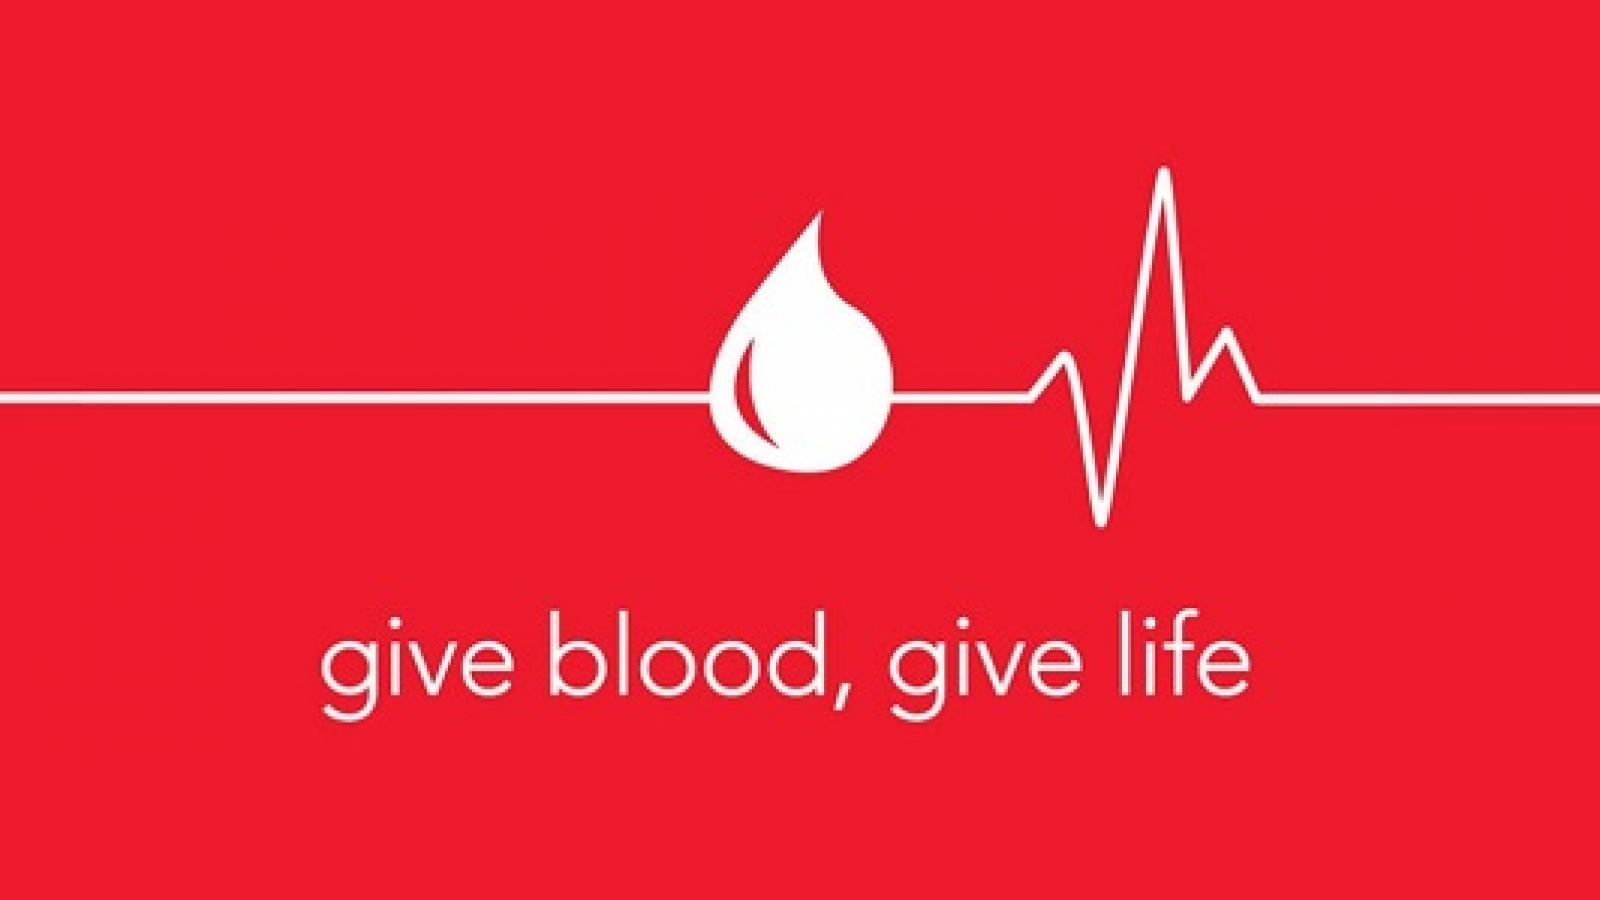 Give blood. Give life.